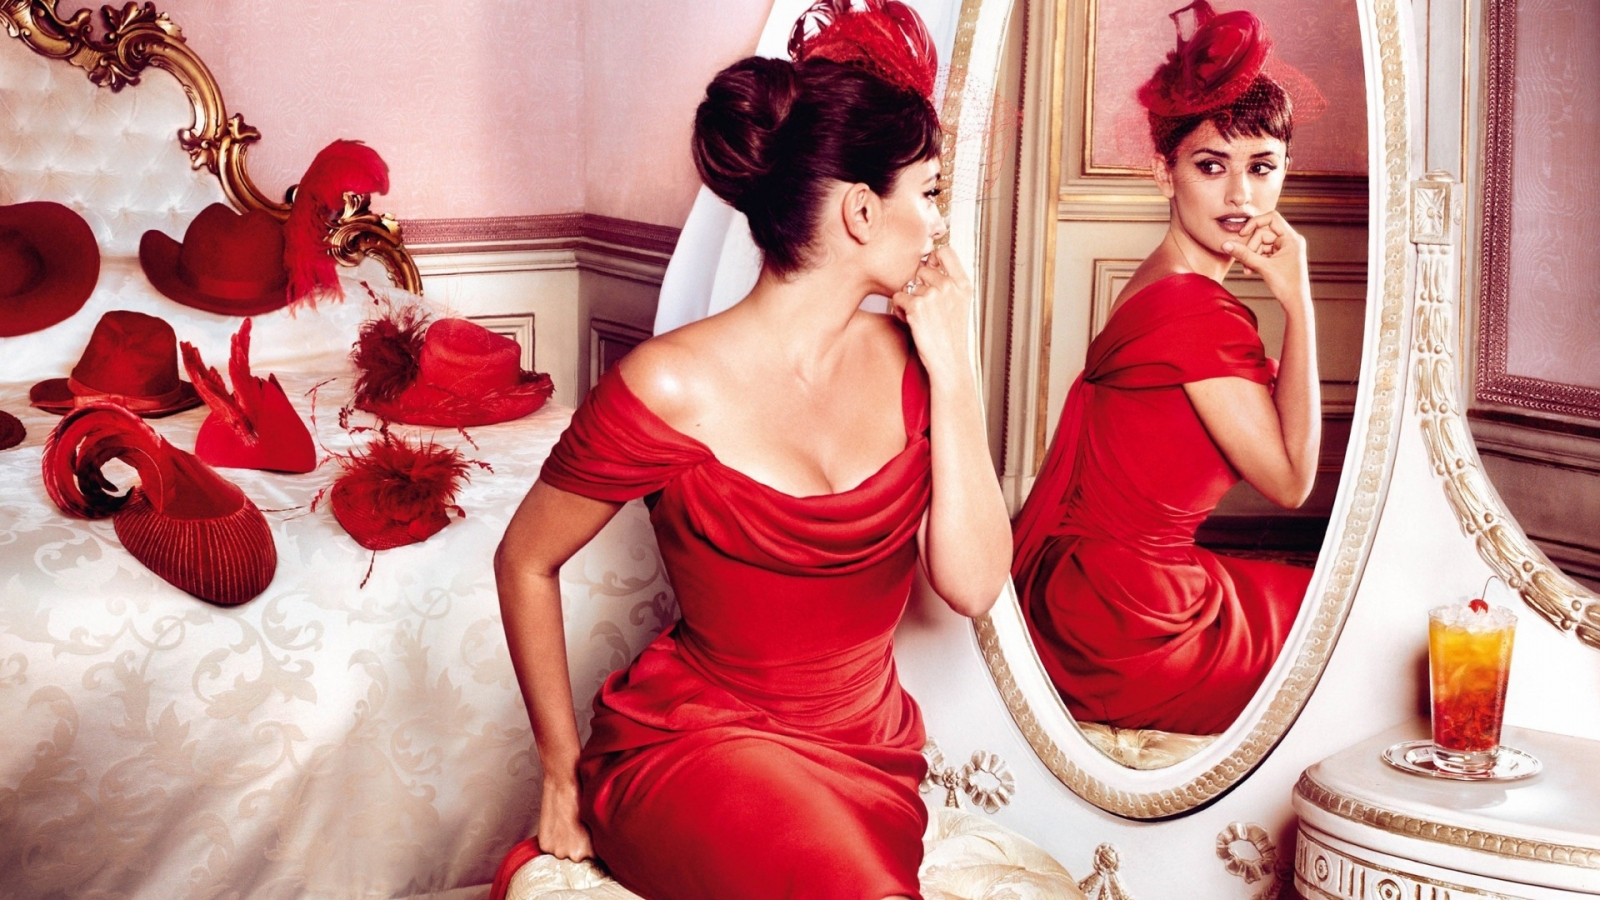 Penelope Cruz Red Outfit for 1600 x 900 HDTV resolution